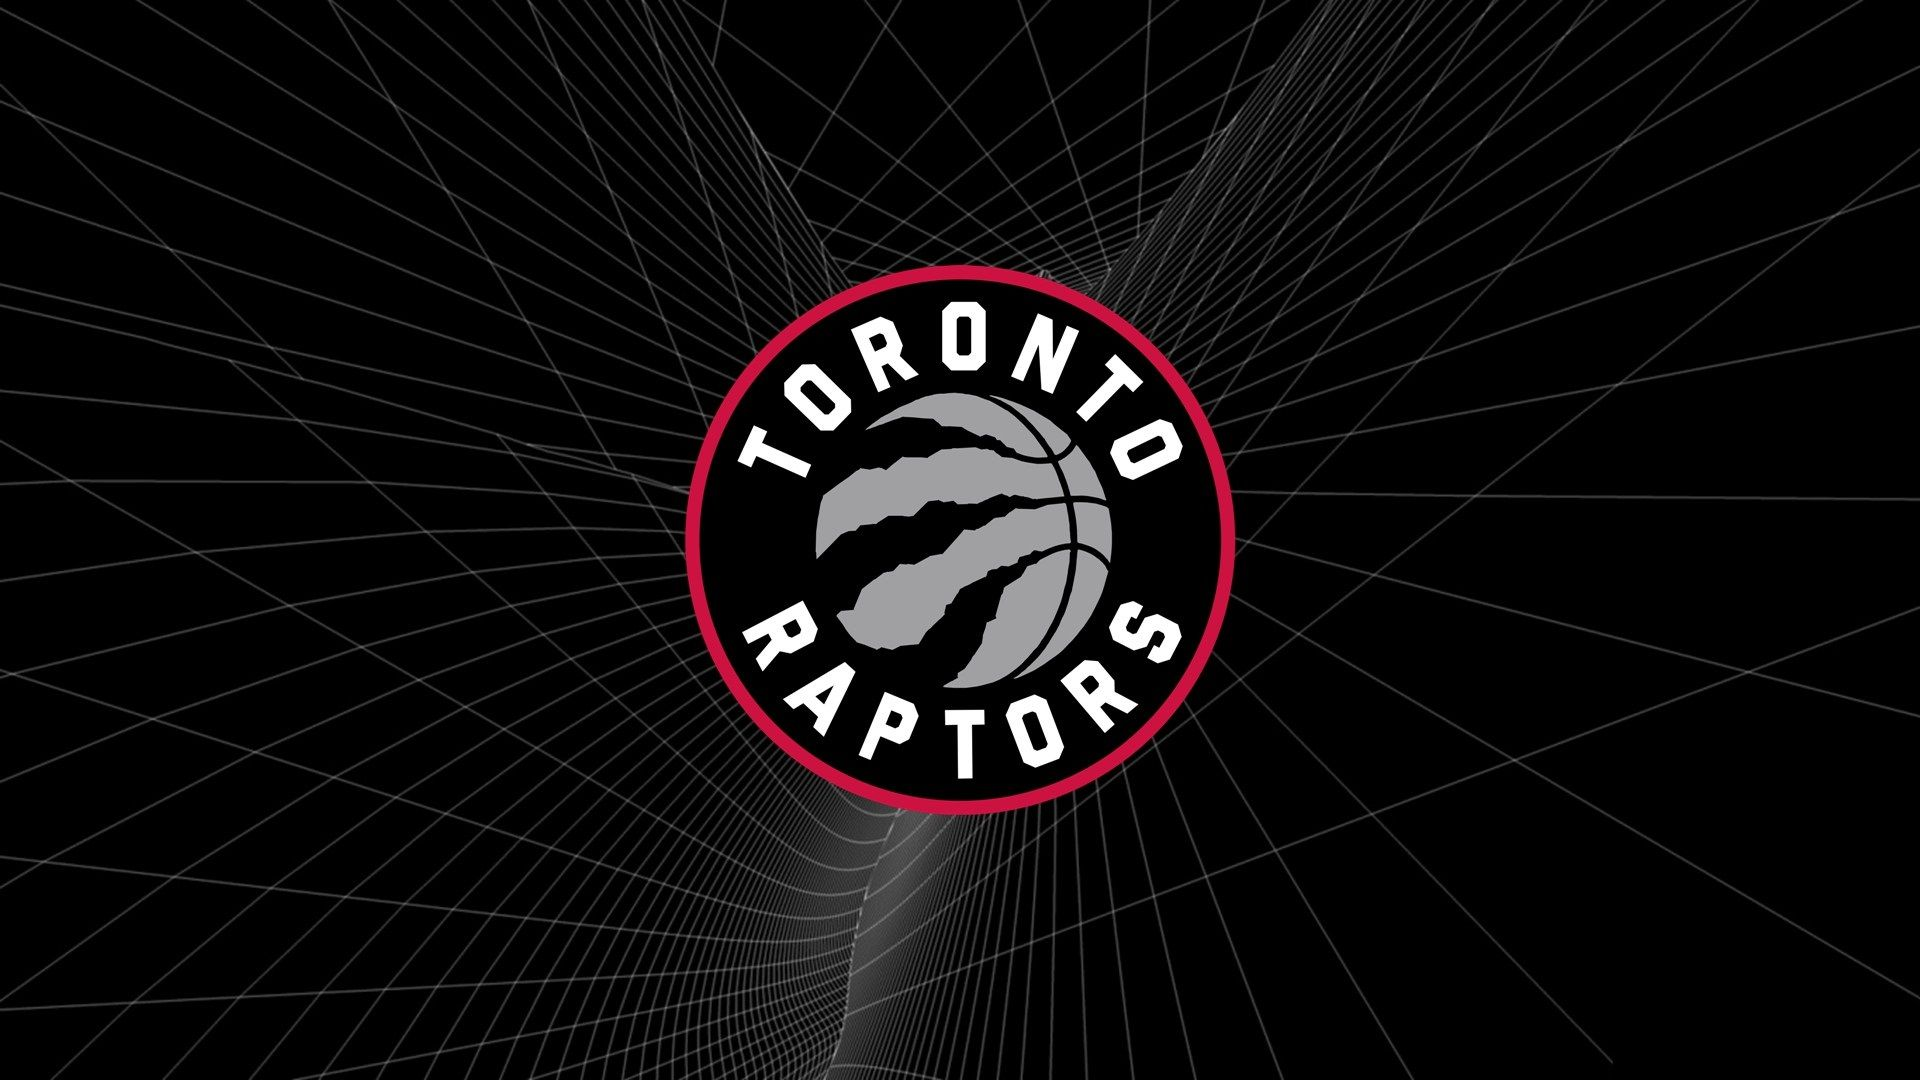 Nba Raptors Backgrounds Hd Is The Perfect High Quality Nba Basketball Wallpaper With Hd Resolution Cl Basketball Wallpaper Basketball Wallpapers Hd Raptors